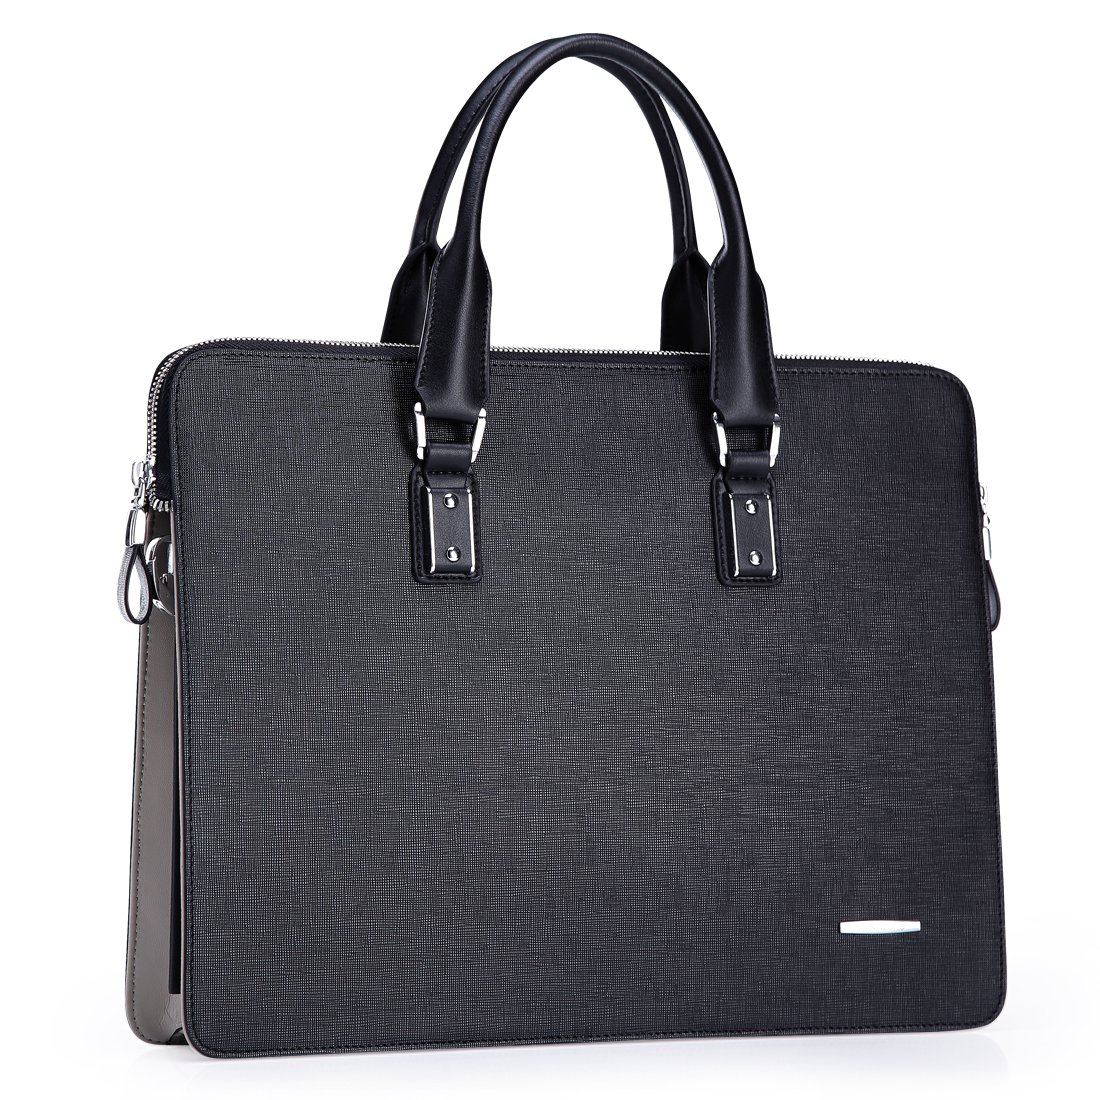 Teemzone Men Leather Briefcase Laptop Messenger Bag Handbag Shoulder Bag (15' laptop bag) T0793